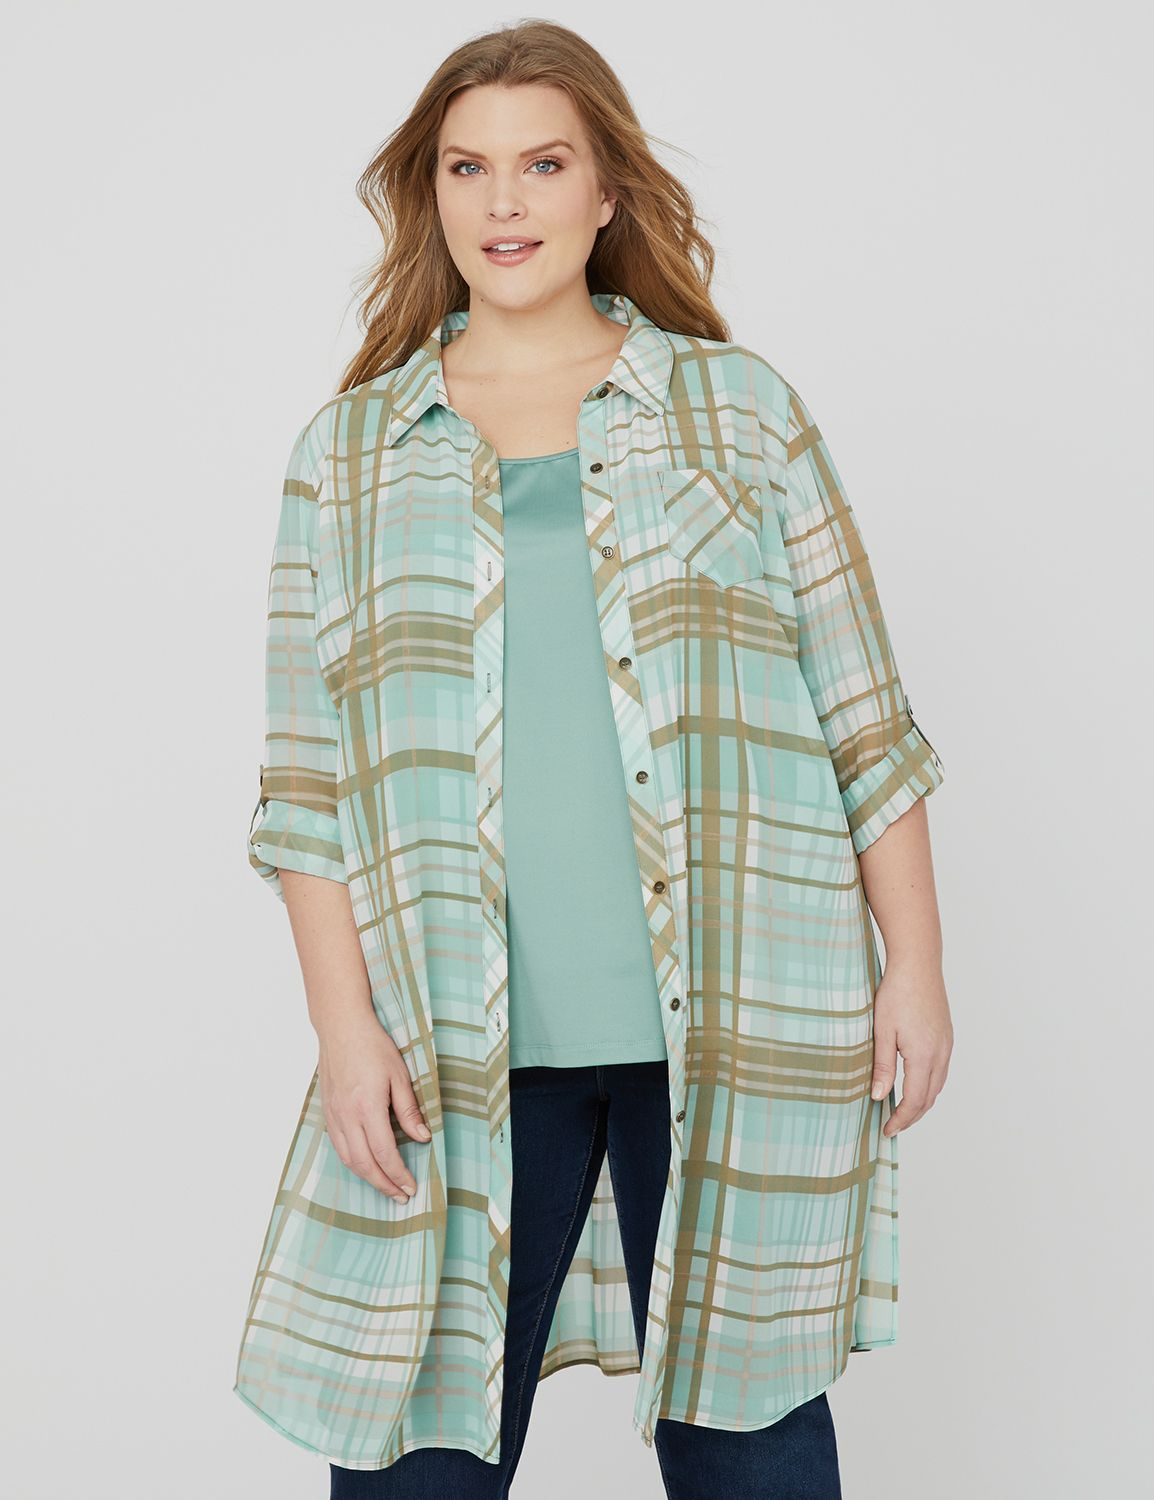 Riverwalk Plaid Duster 1081590-1091388 Long Roll 3Q Slv Bu MP-300103567